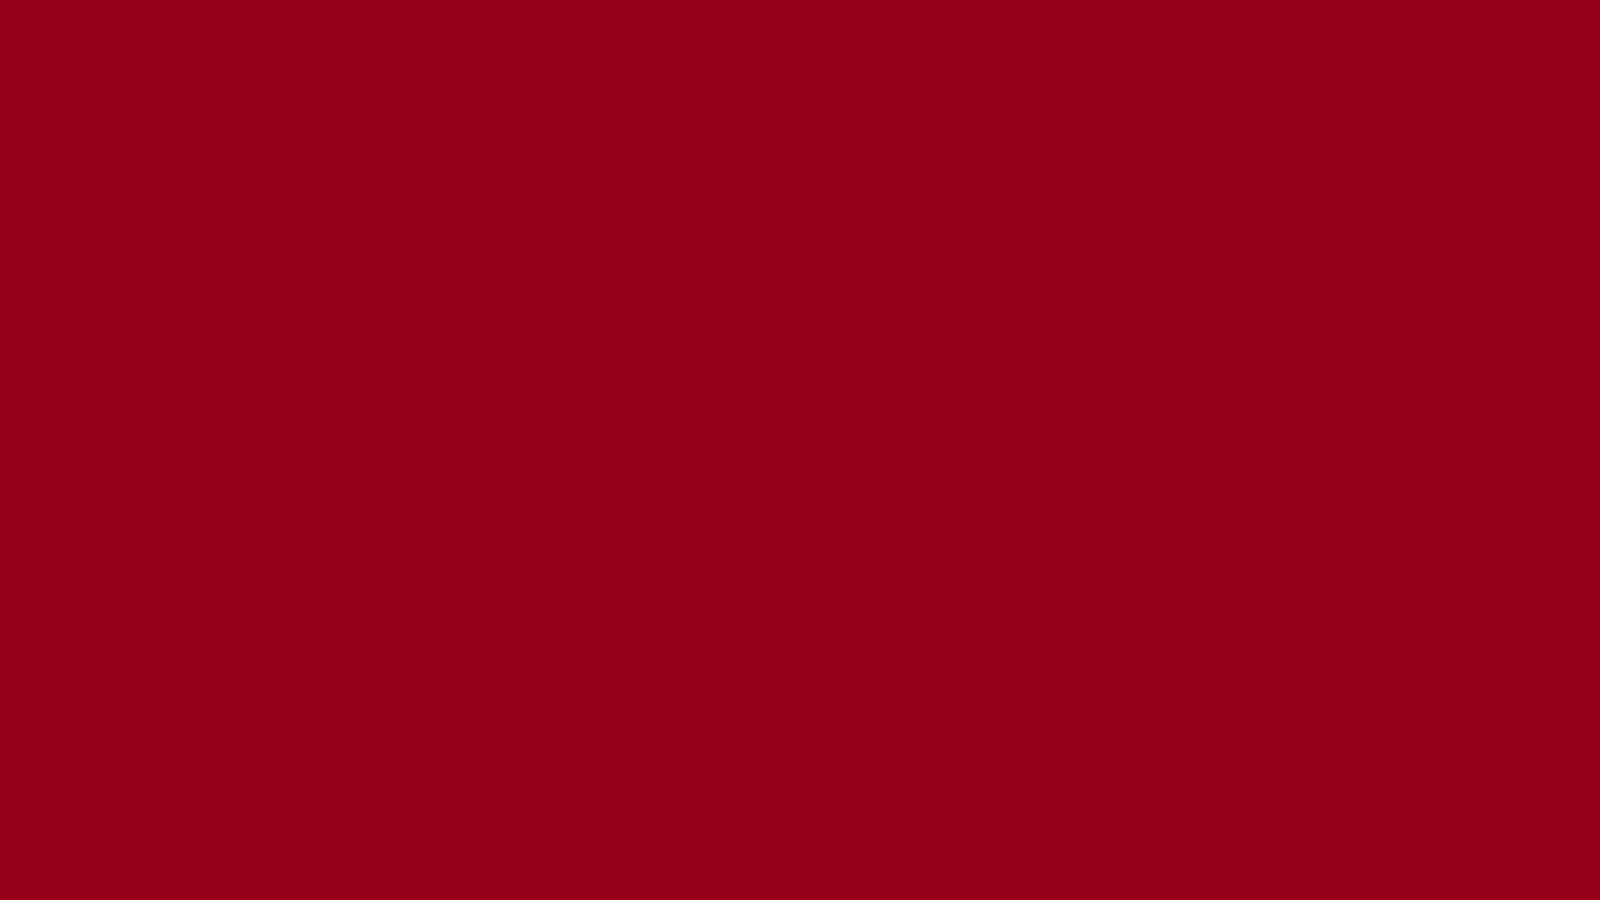 1600x900 Carmine Solid Color Background